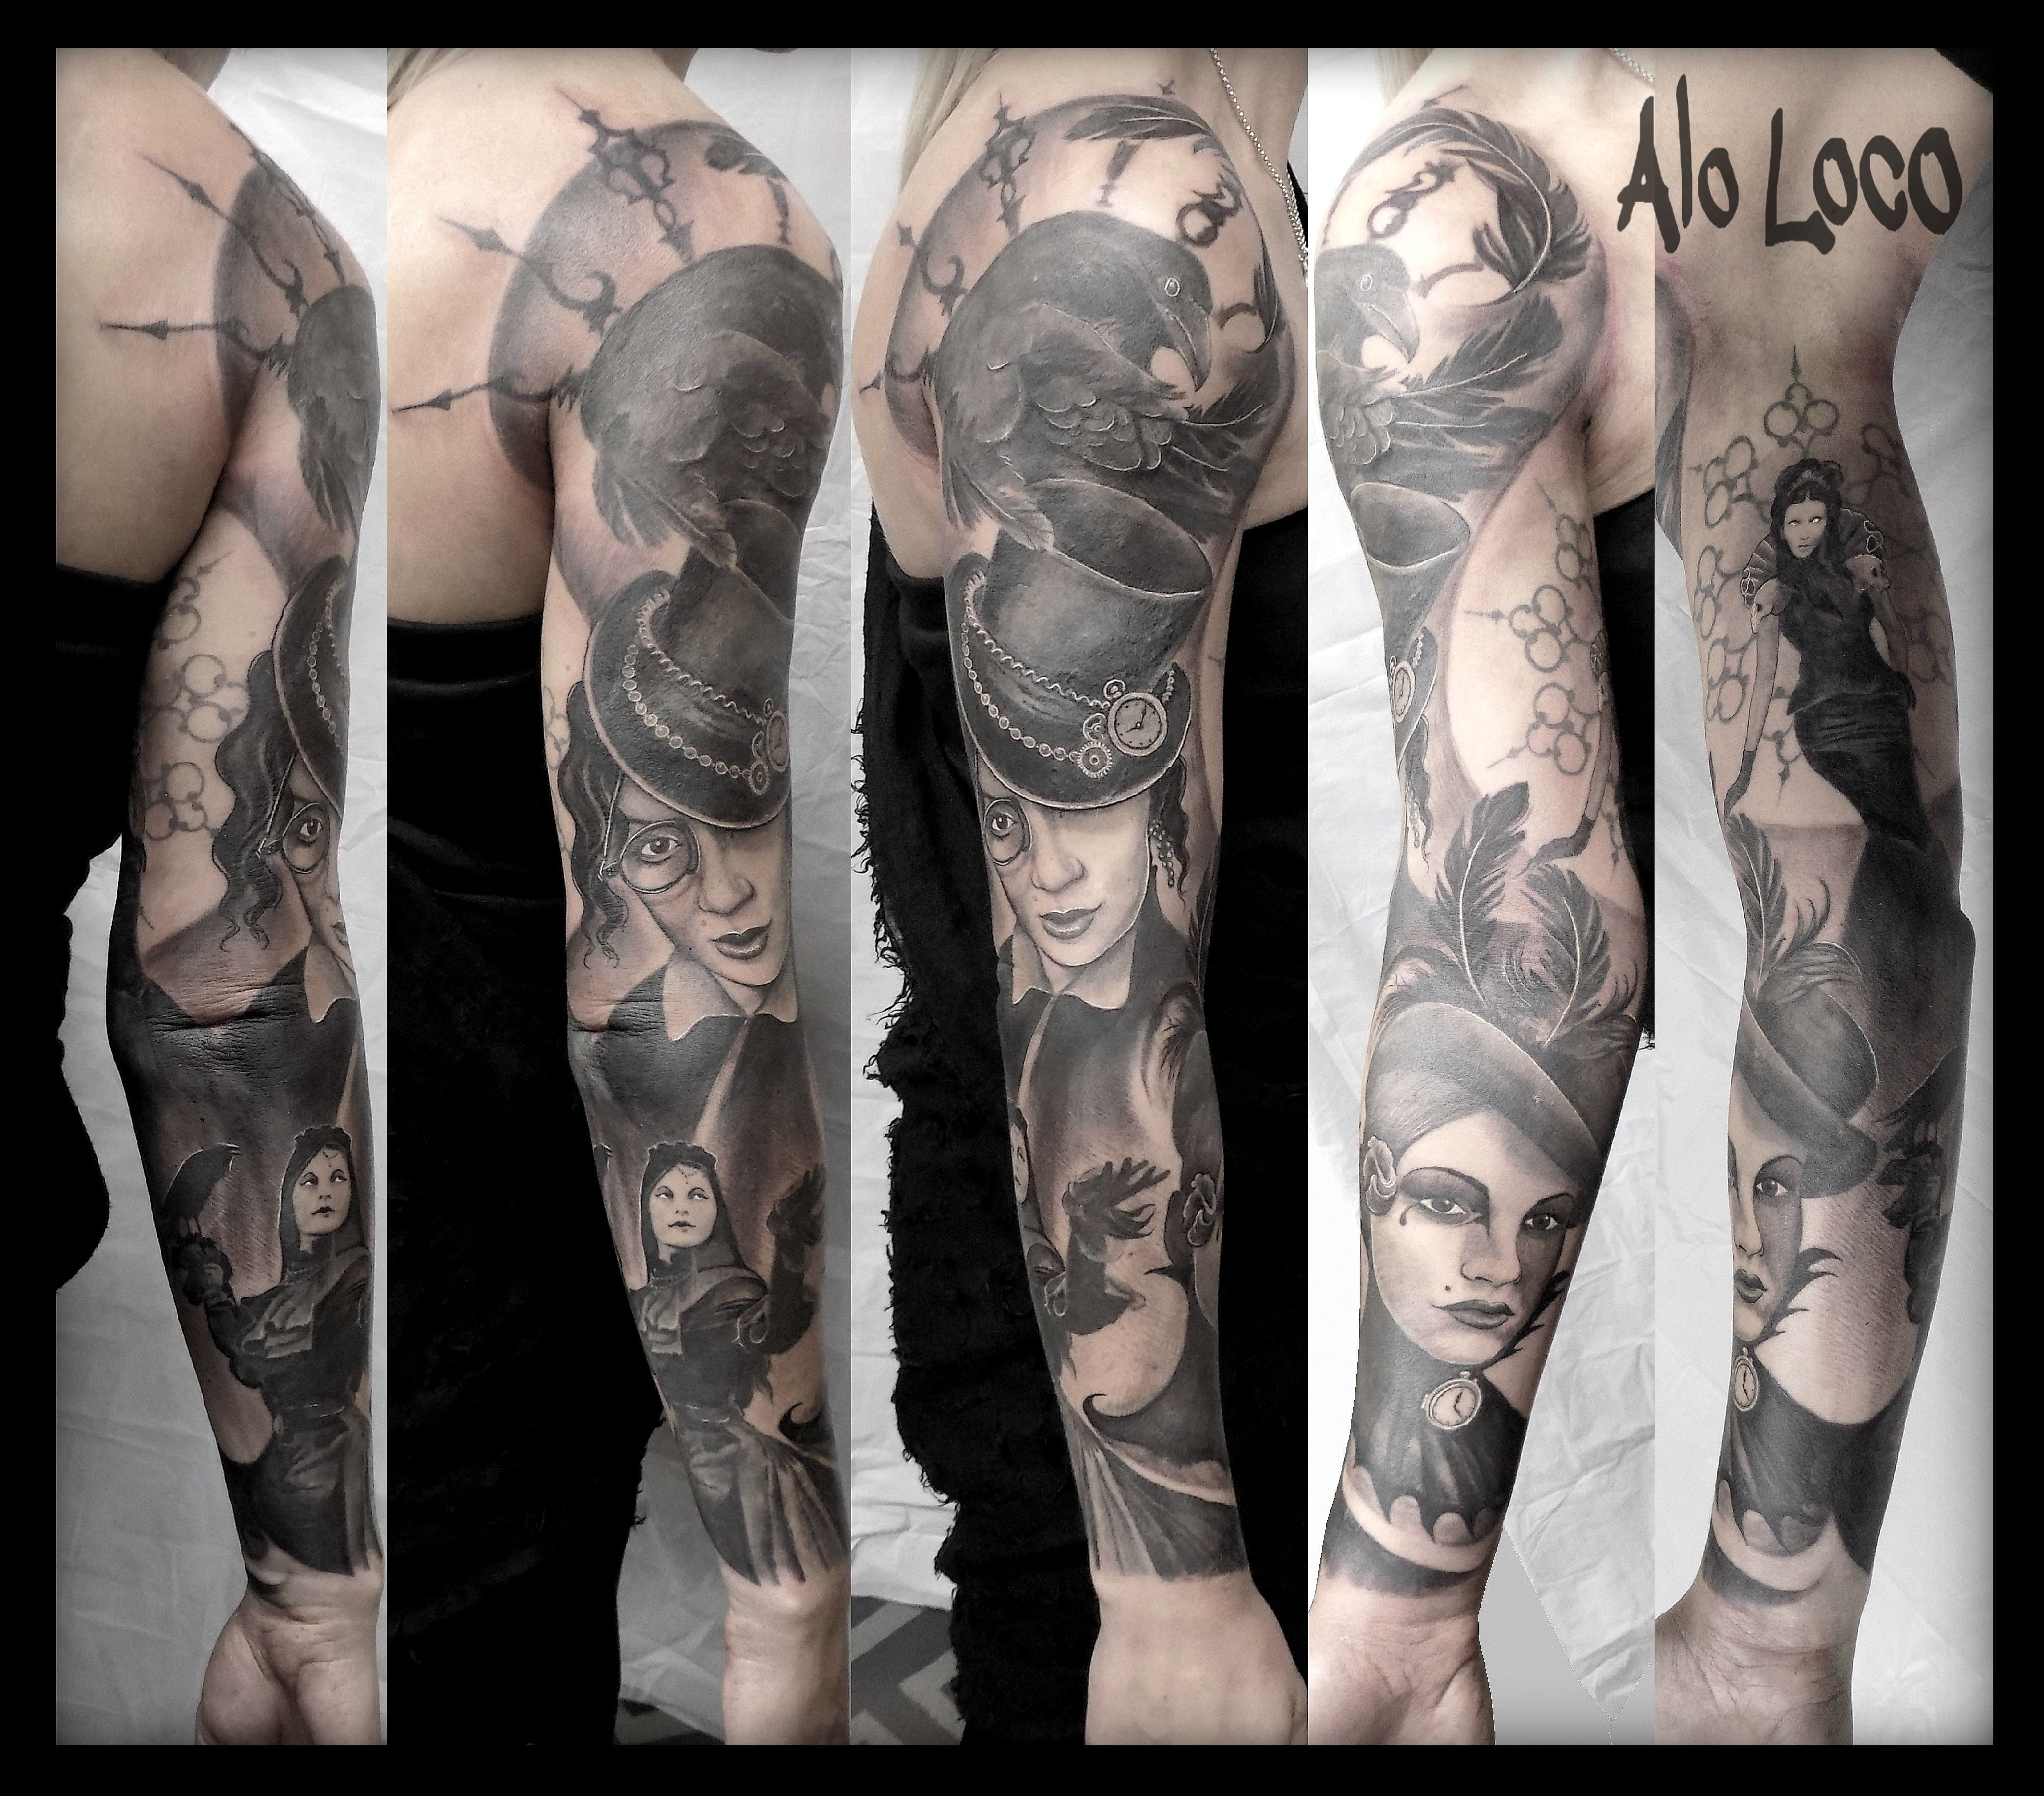 Black And Grey Tattoos In London Full Sleeves Portraits Realism And Surrealism By Alo Loco Uk Black And Grey Tattoos Sleeve Tattoos Grey Tattoo